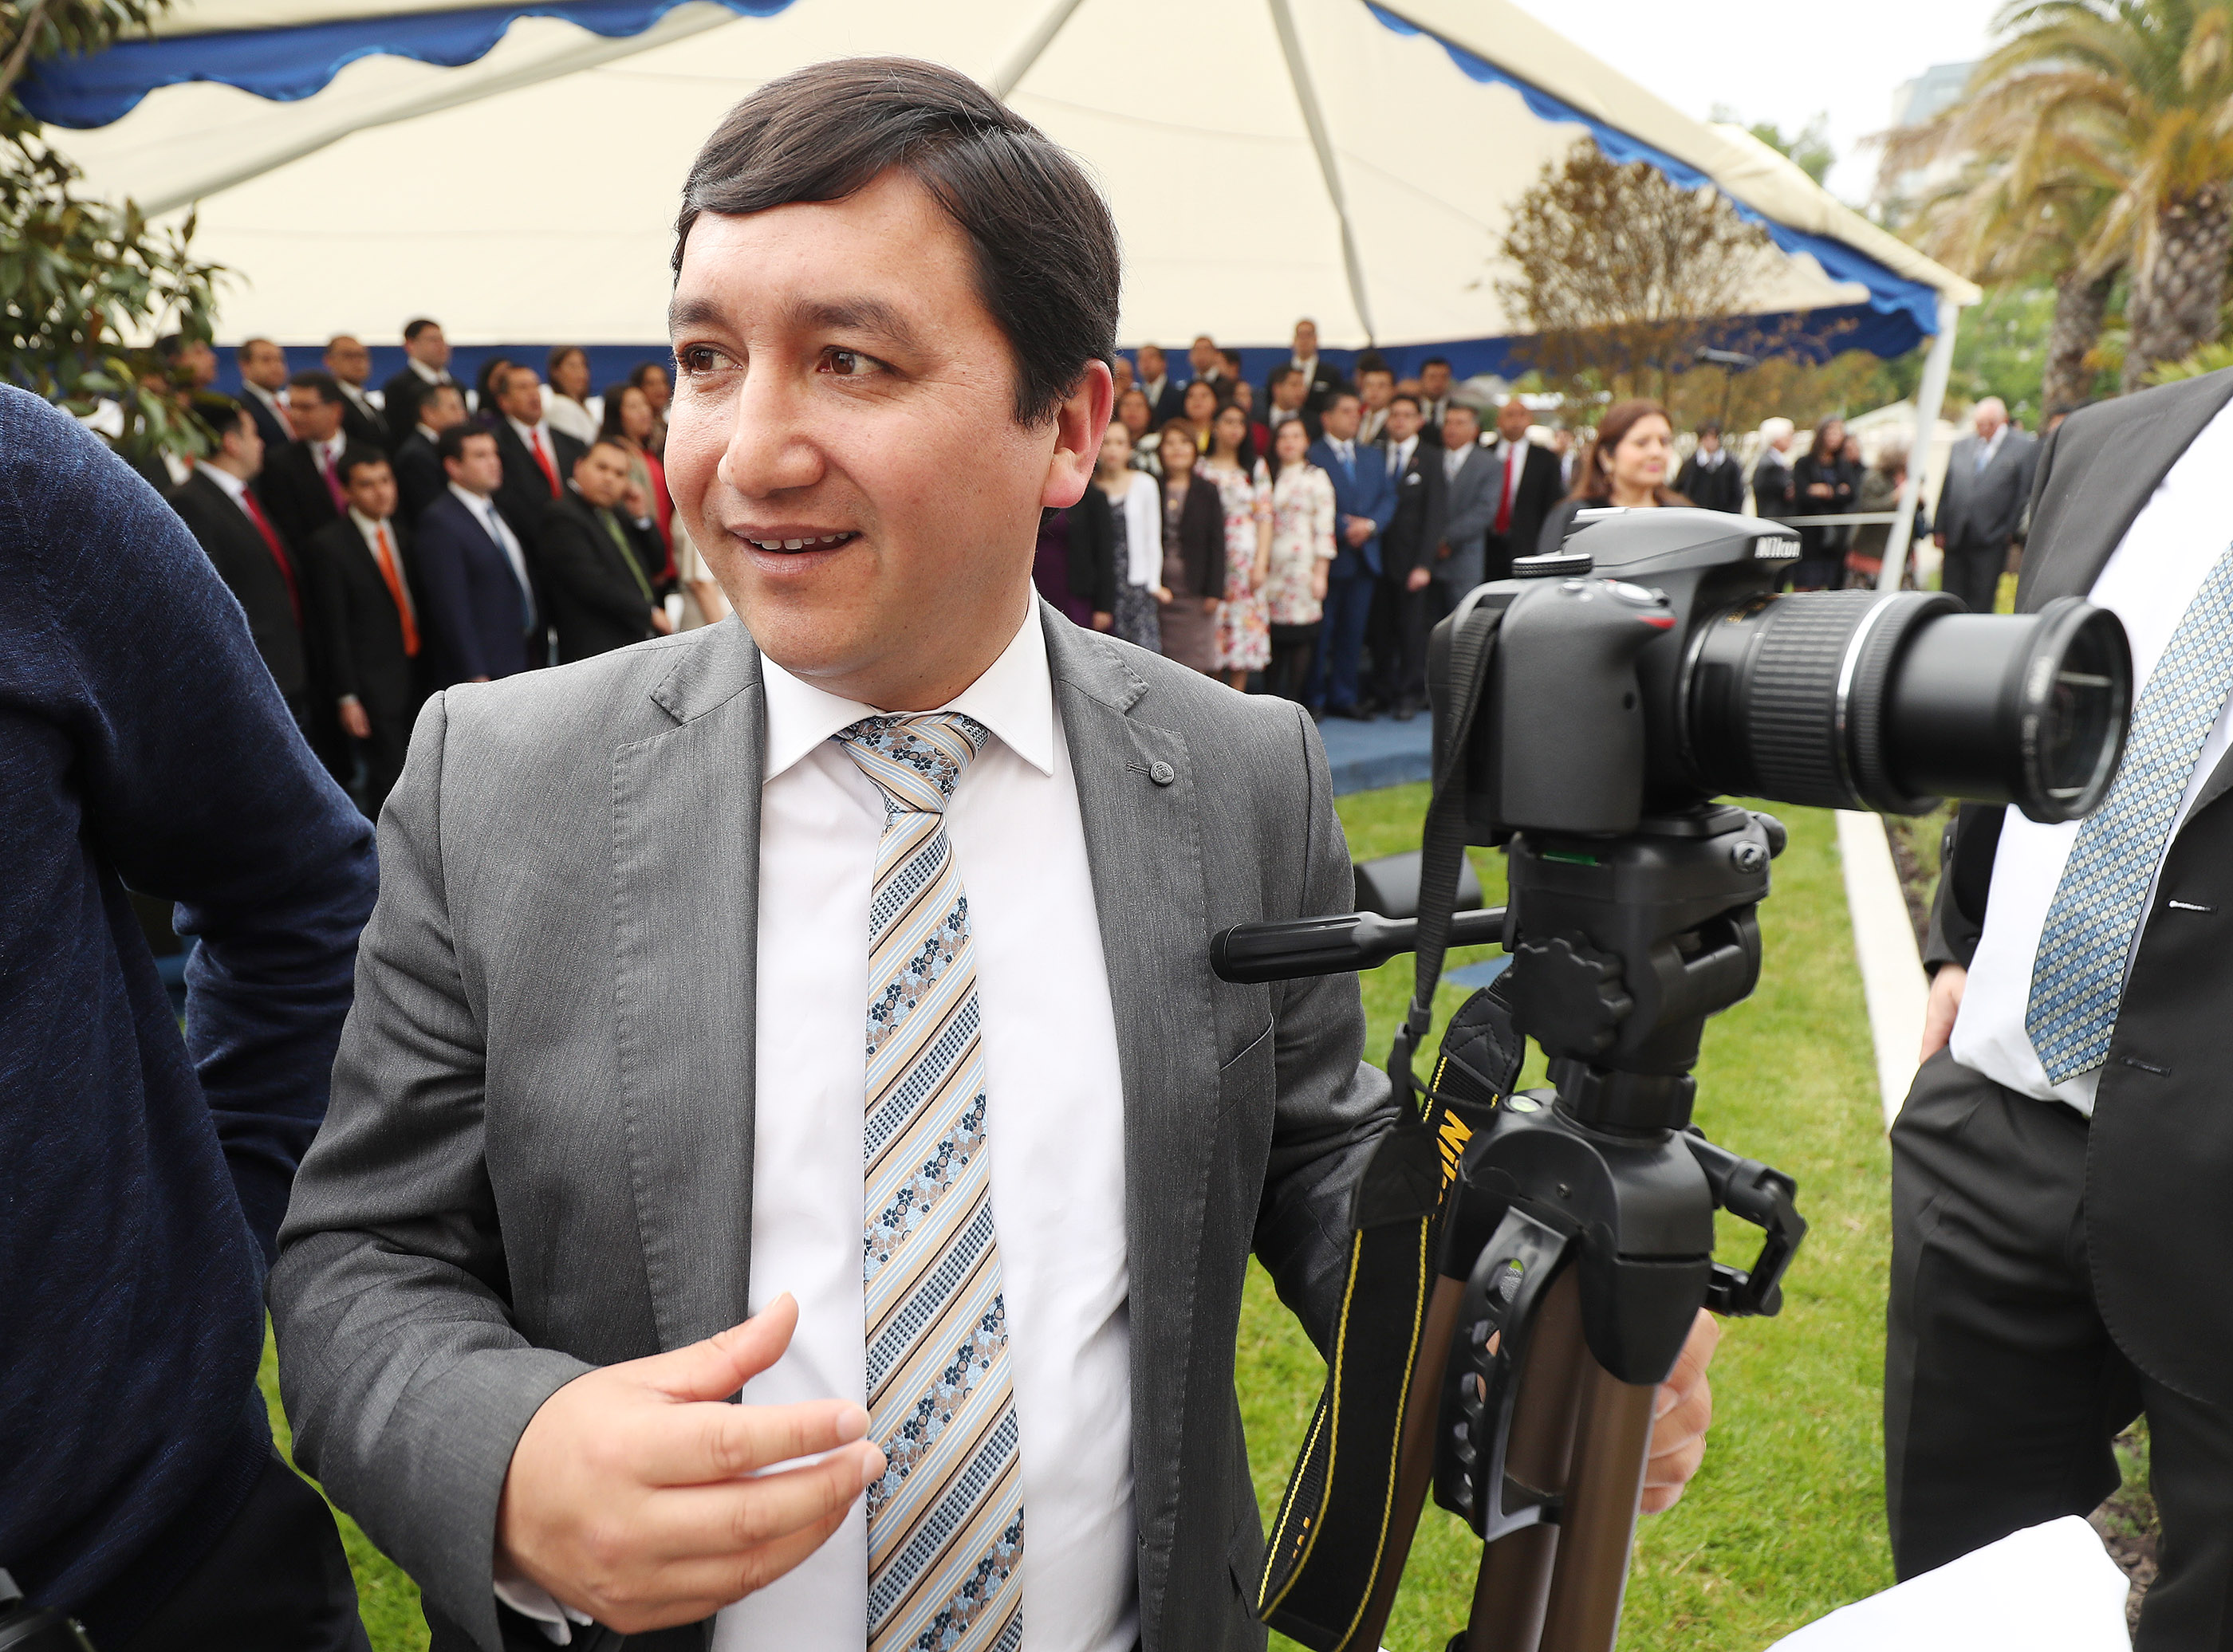 Journalist Jorge Valencia covers the cornerstone ceremony of the Concepcion Chile Temple on the day of its dedication on Sunday, Oct. 28, 2018, in Concepcion, Chile.